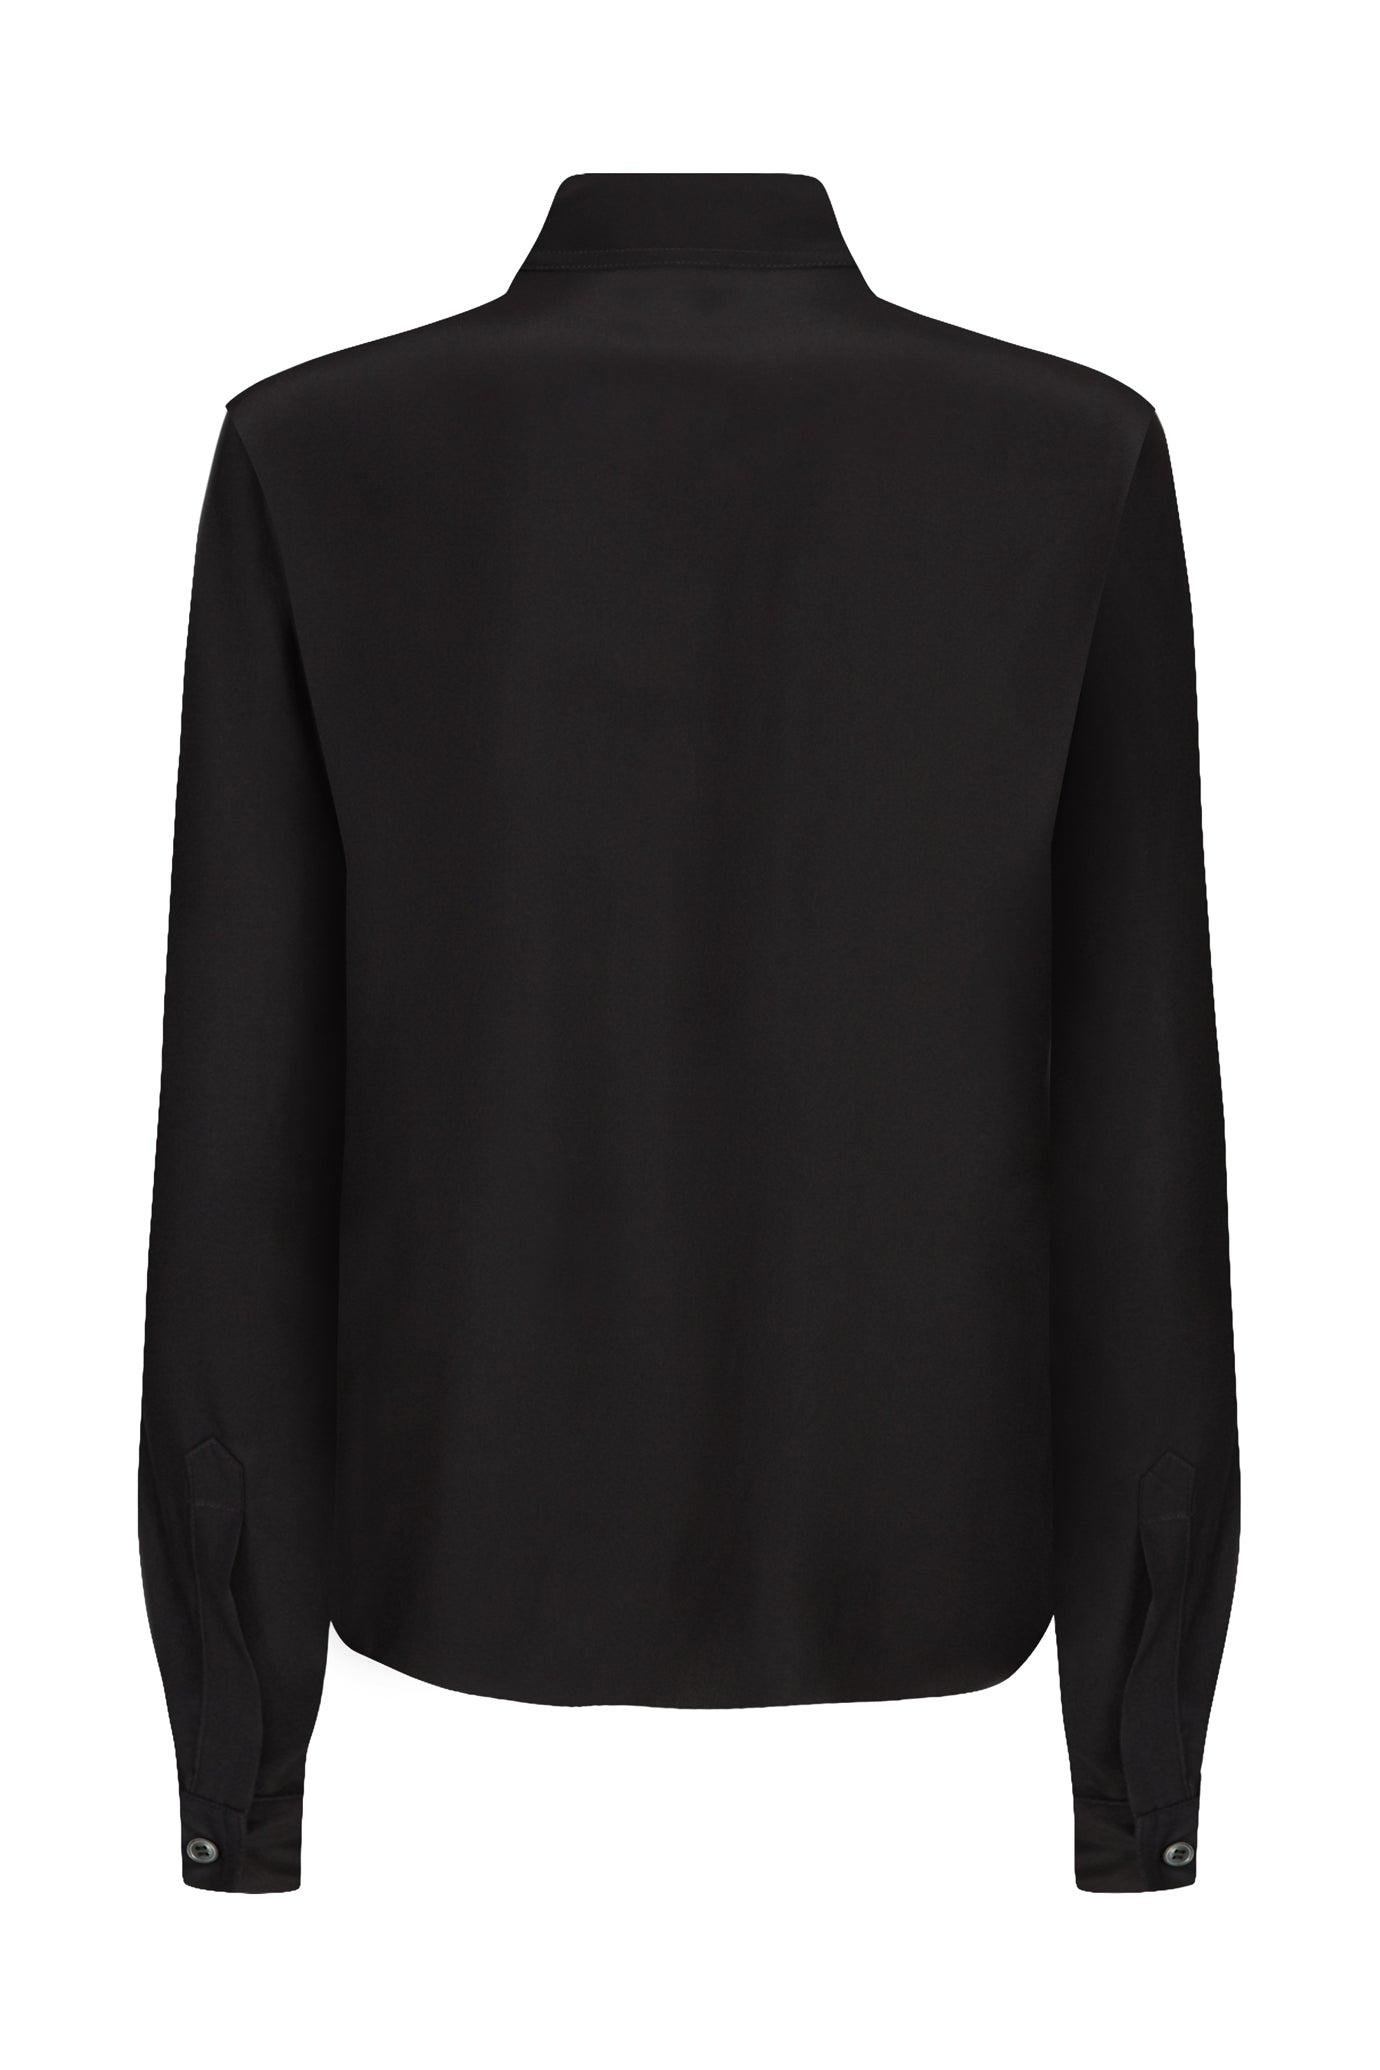 The Serena Fitted Shirt - Black Matte Silk